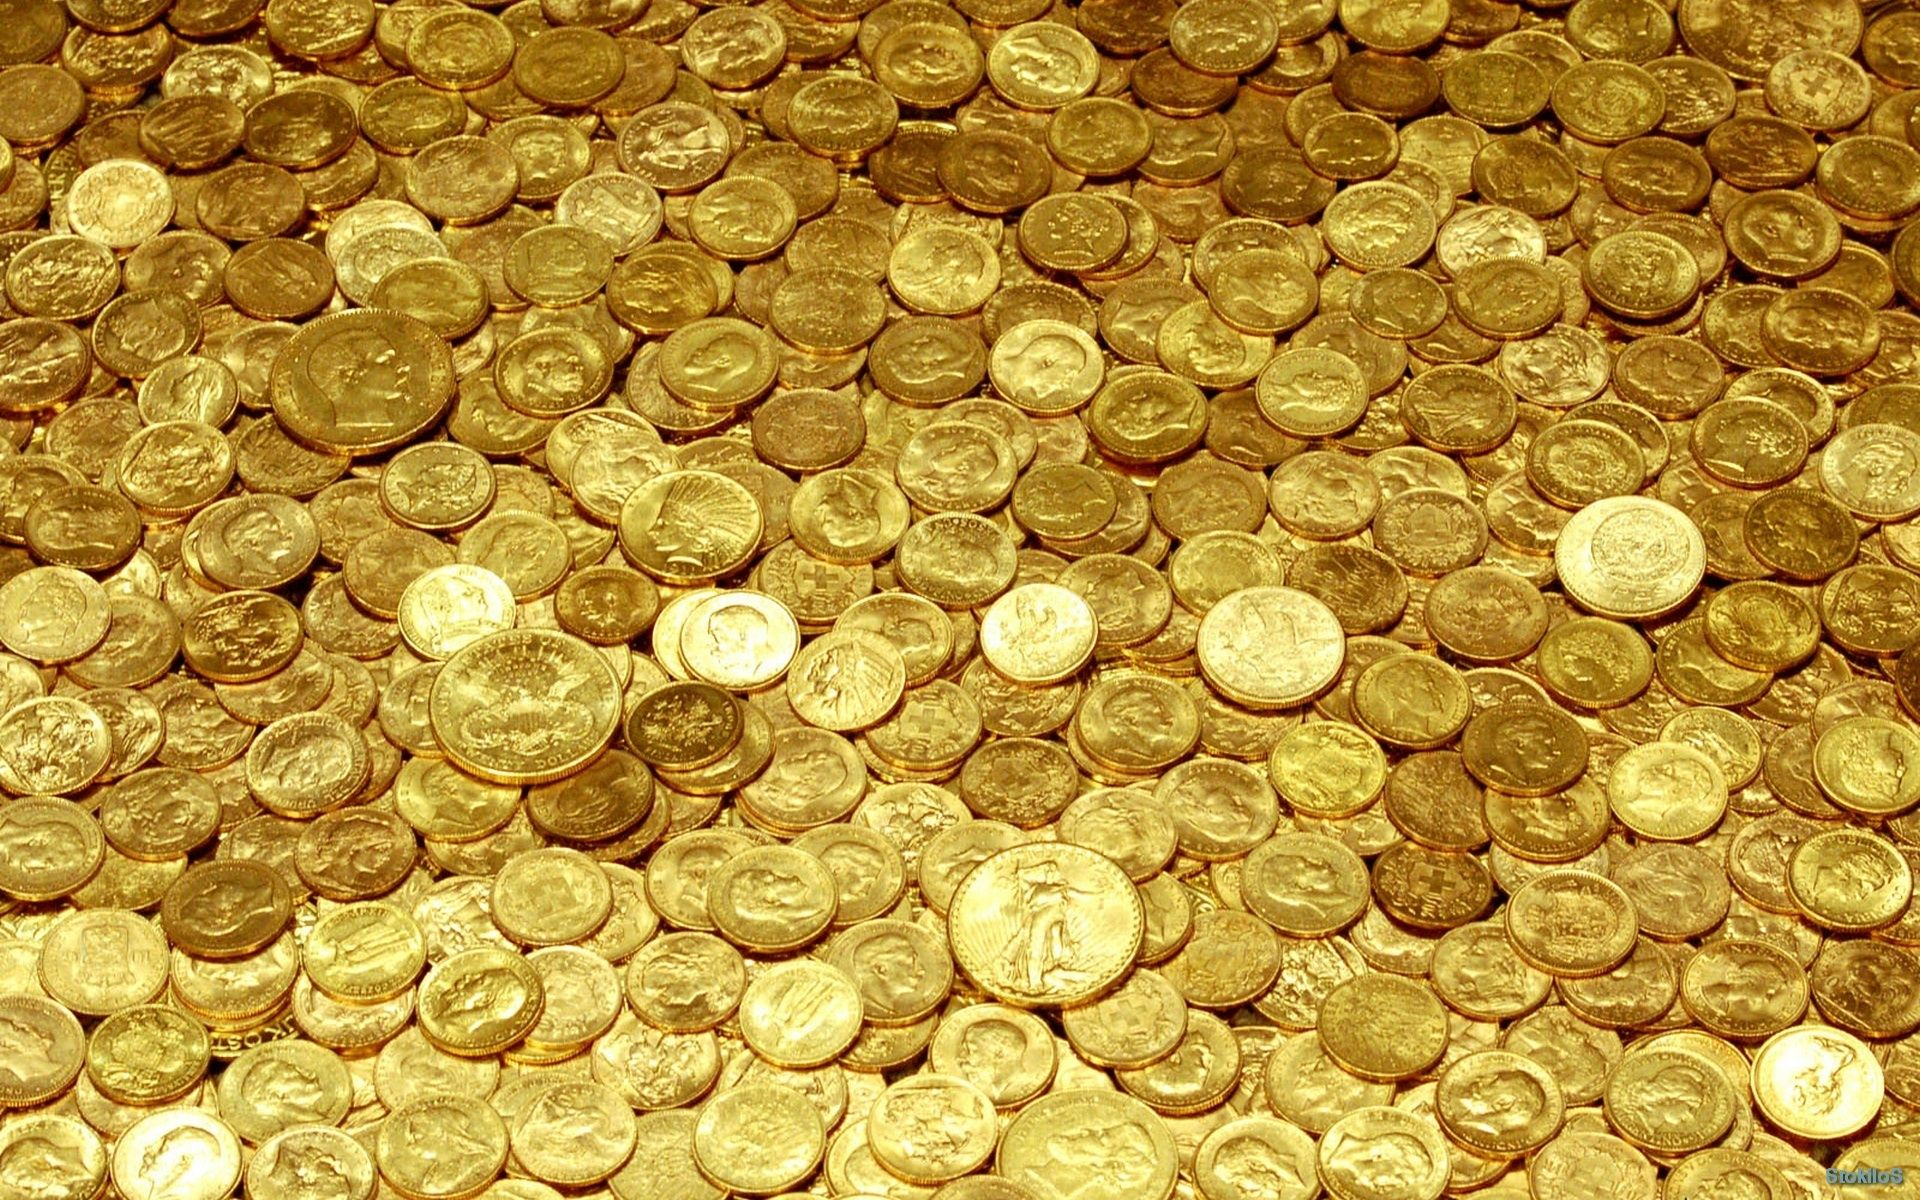 Coins gold yellow money wallpaper | 1920x1200 | 65636 | Gold investments, Buying gold, Gold coins